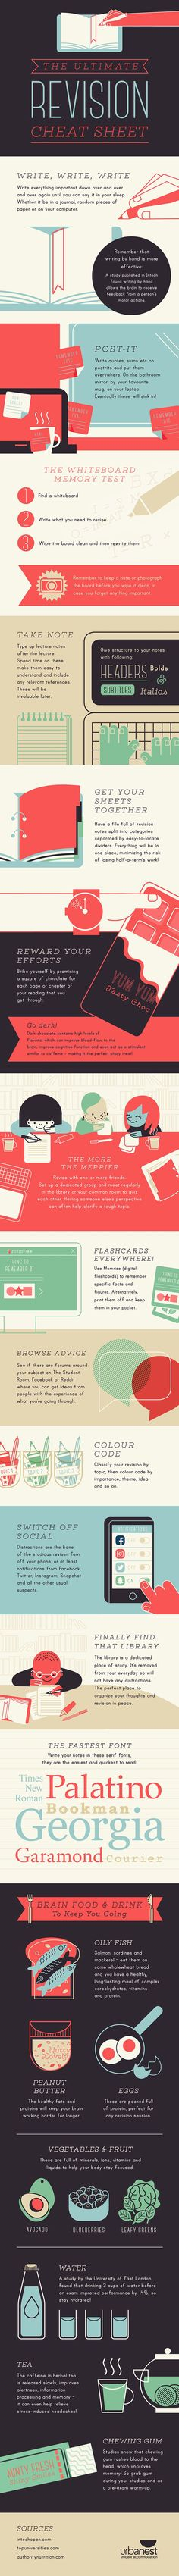 Educational infographic & Data The Ultimate Revision Cheat Sheet Infographic - elearninginfograp. Image Description The Ultimate Revision Cheat Sheet University Checklist, University Tips, University Essentials, Revision Techniques, Revision Tips, Study Skills, Study Tips, Study Smarter Not Harder, Exam Success